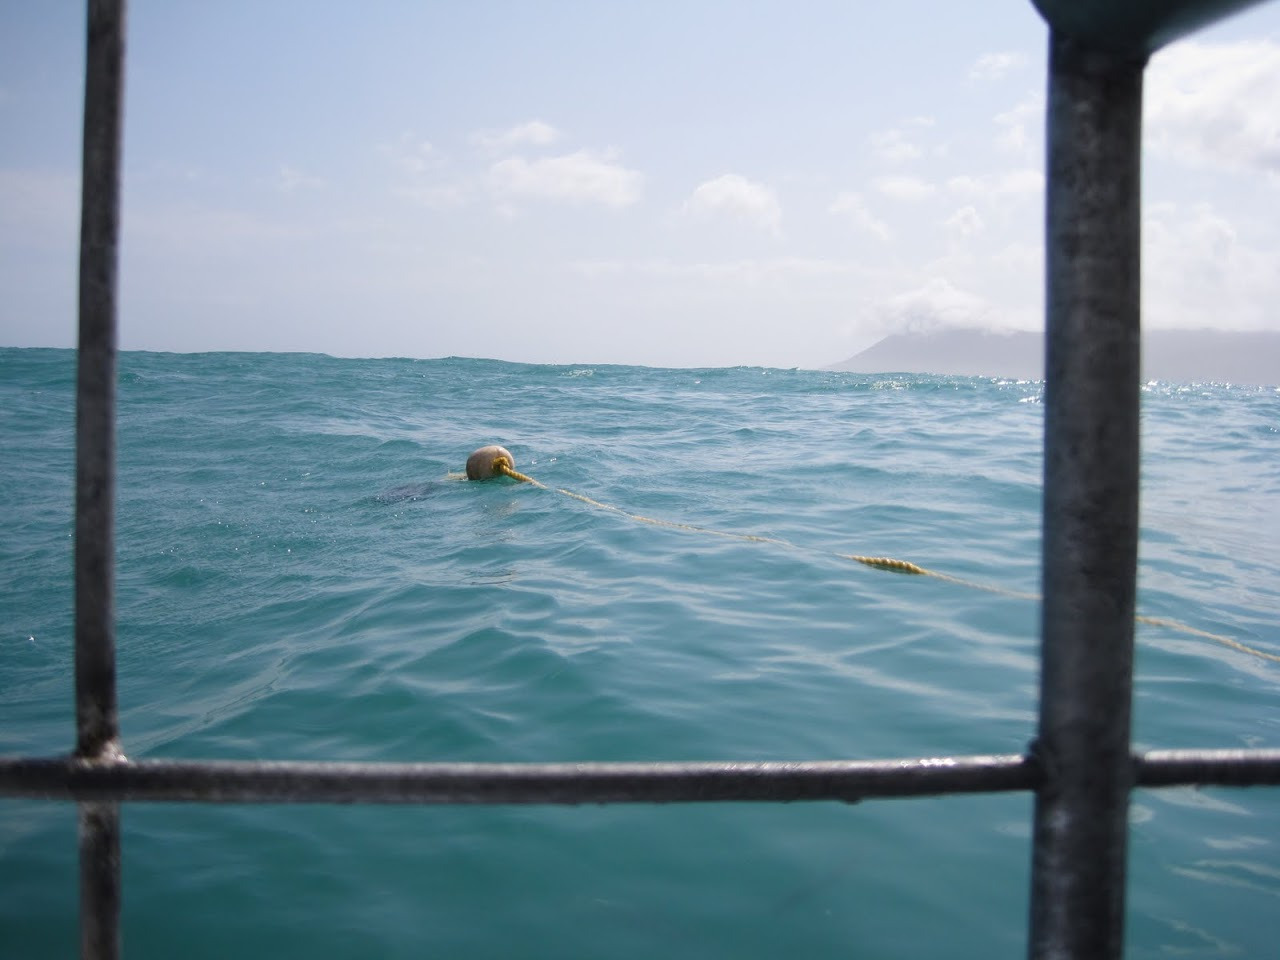 View from shark diving cage